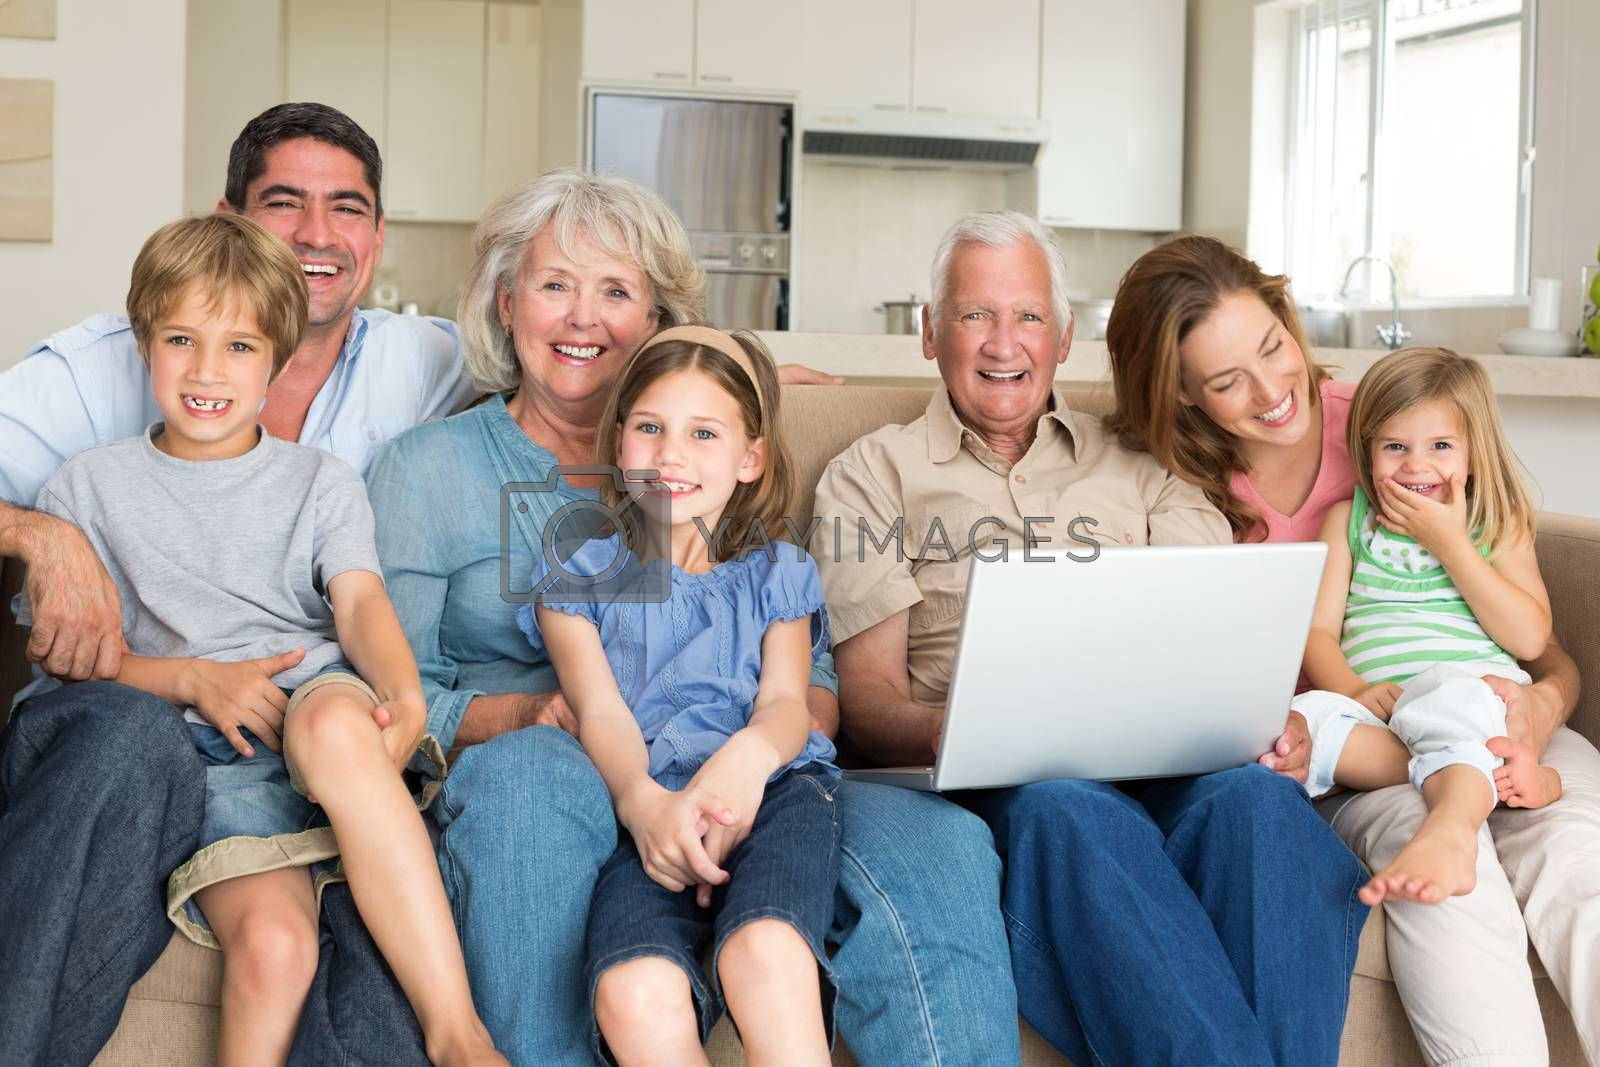 Portrait of cheerful multigeneration family with laptop in living room